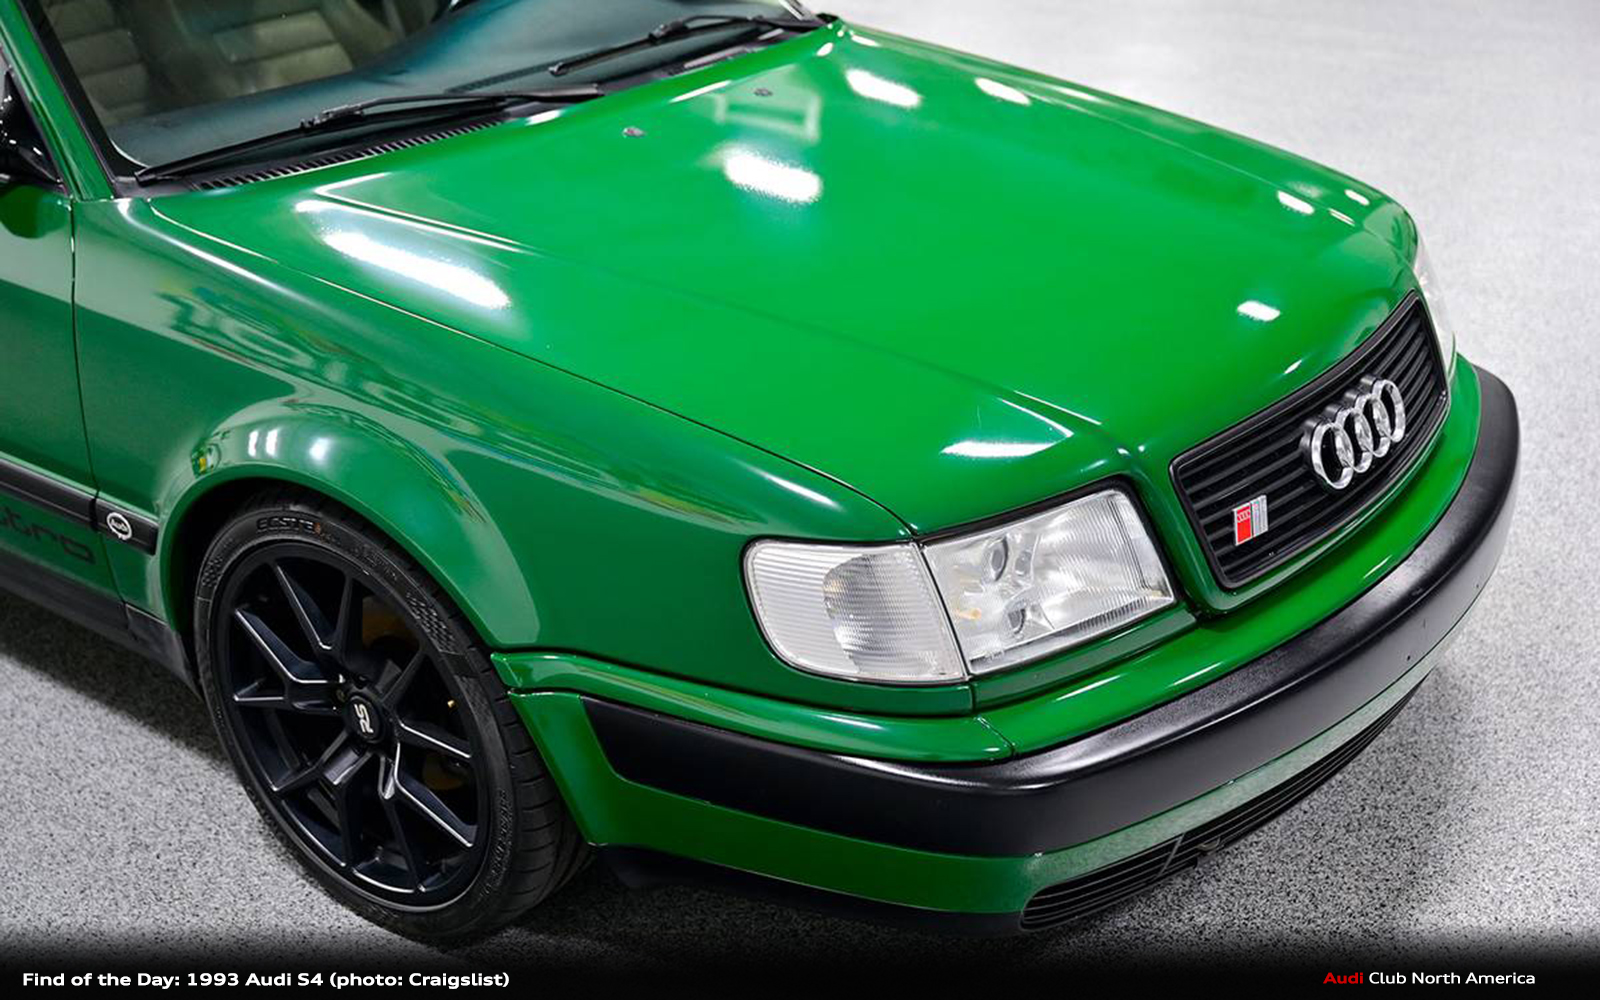 Find of the Day: 1993 Audi S4...a Very Green Audi S4